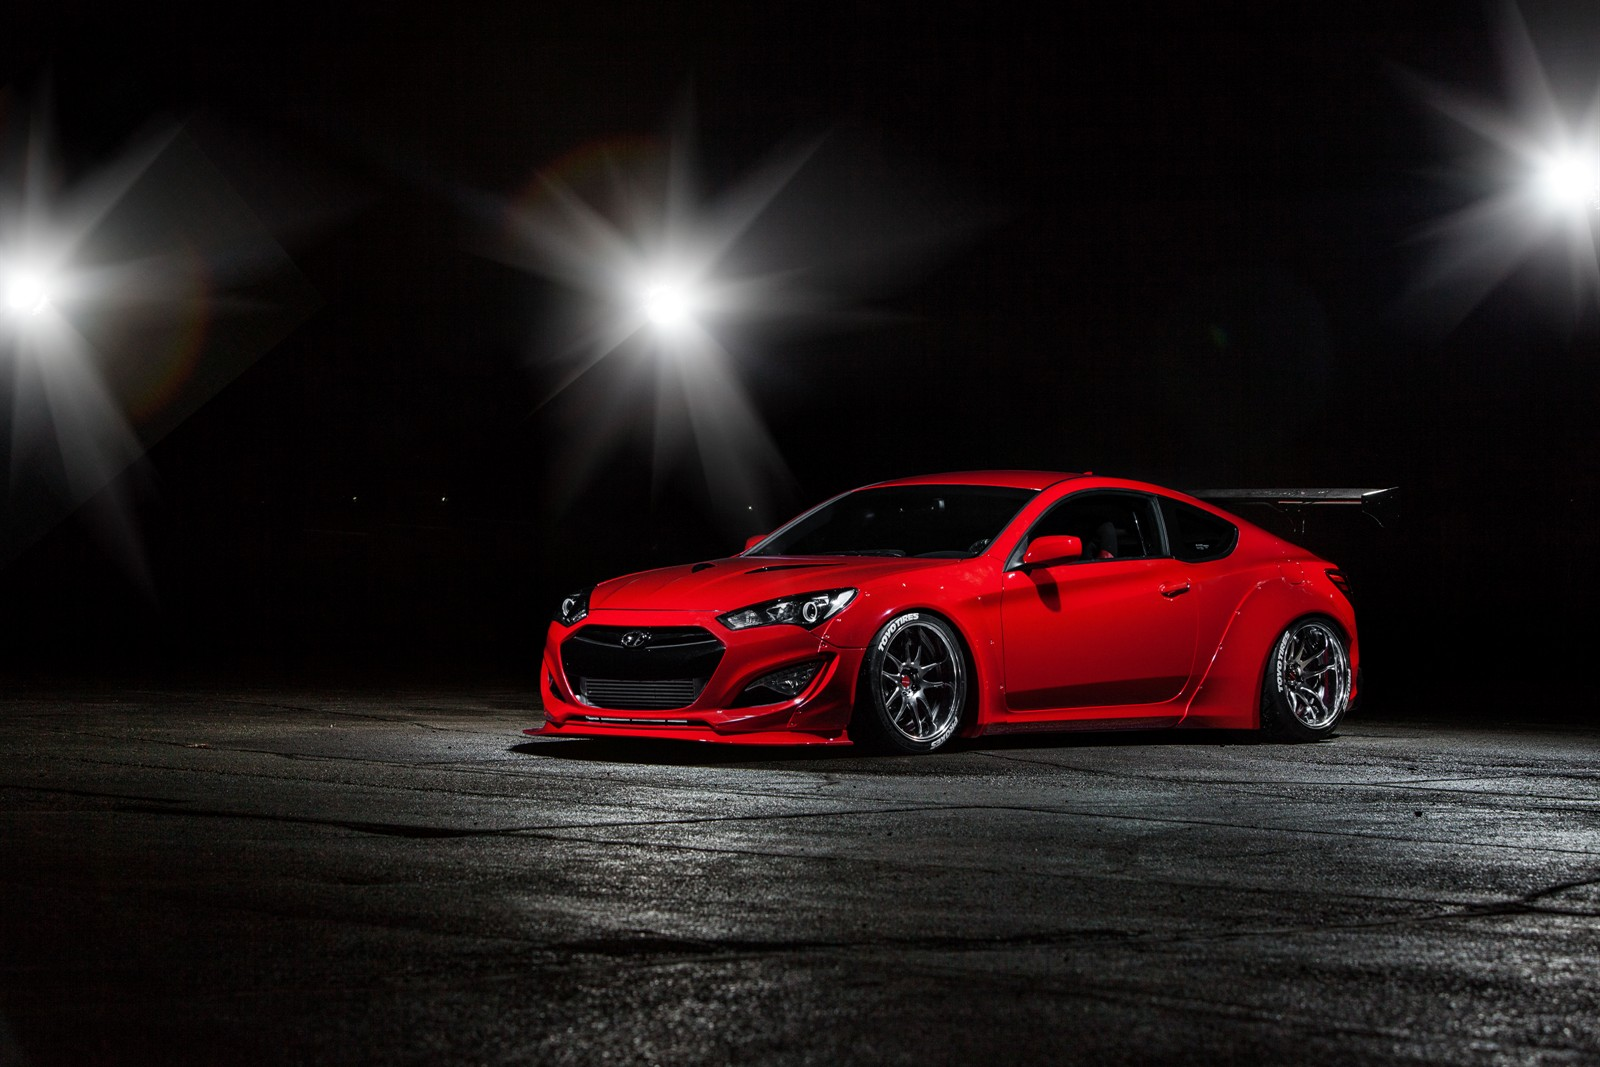 hyundai teams up with blood type racing to debut underground racing genesis at sema show the. Black Bedroom Furniture Sets. Home Design Ideas